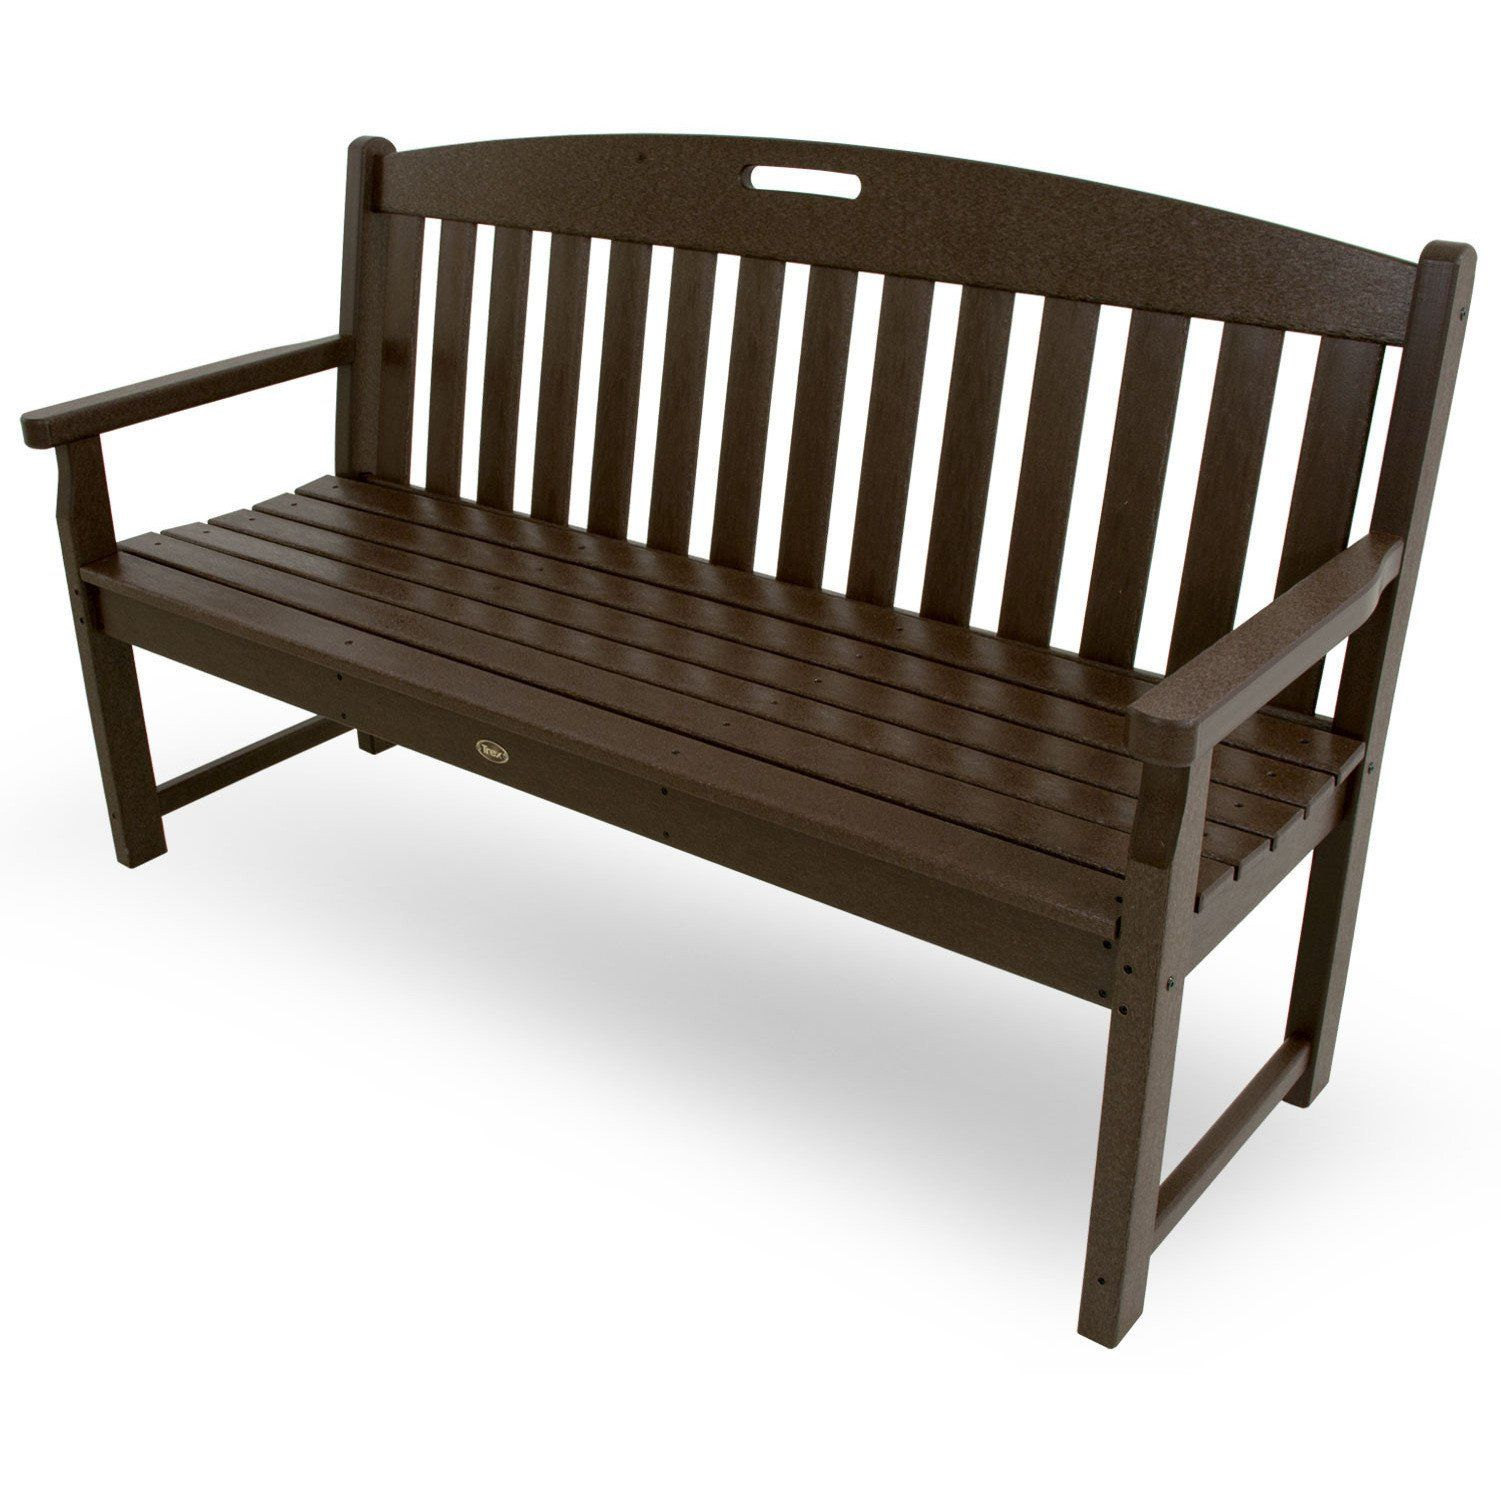 "Trex Outdoor Furniture Yacht Club 60"" Bench"